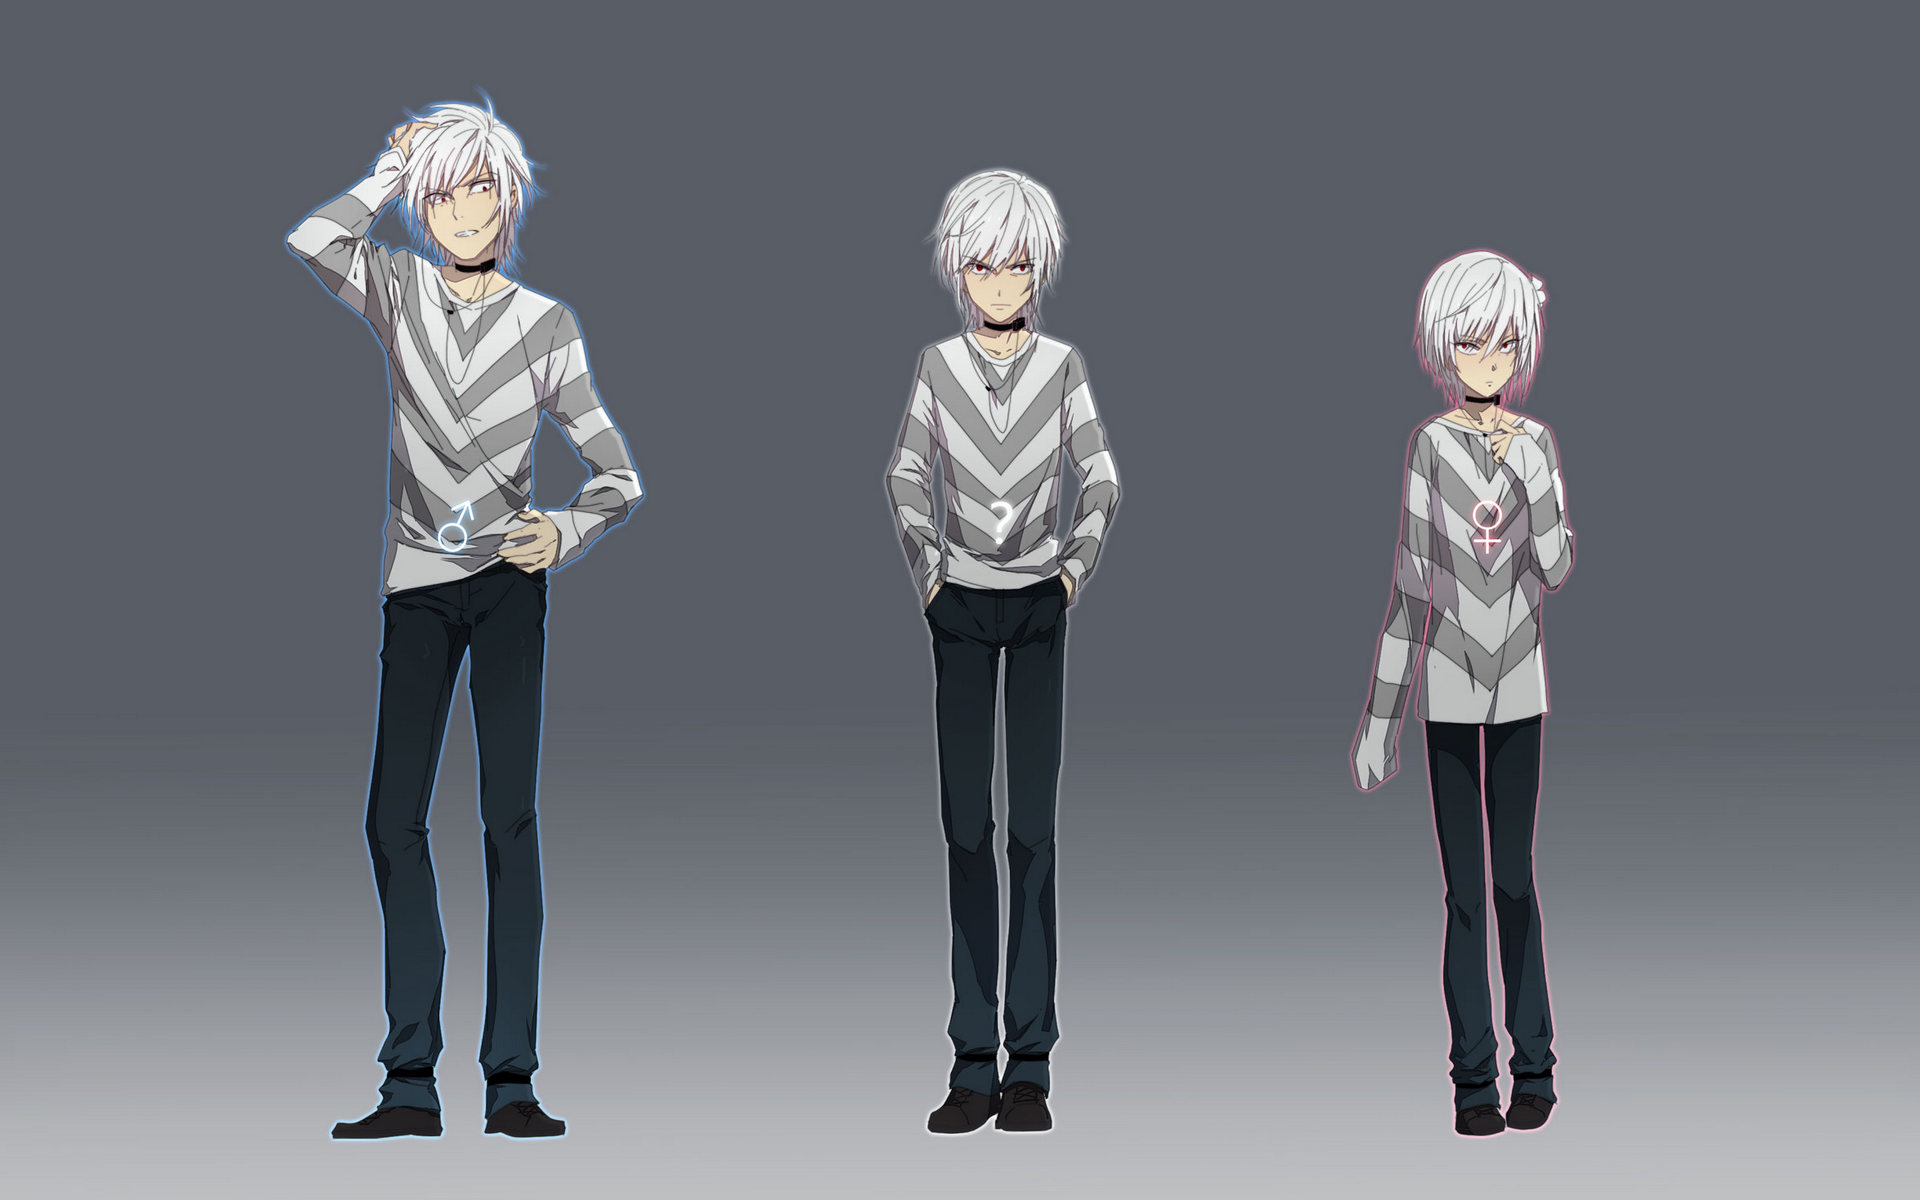 Accelerator Full HD Wallpaper And Background Image